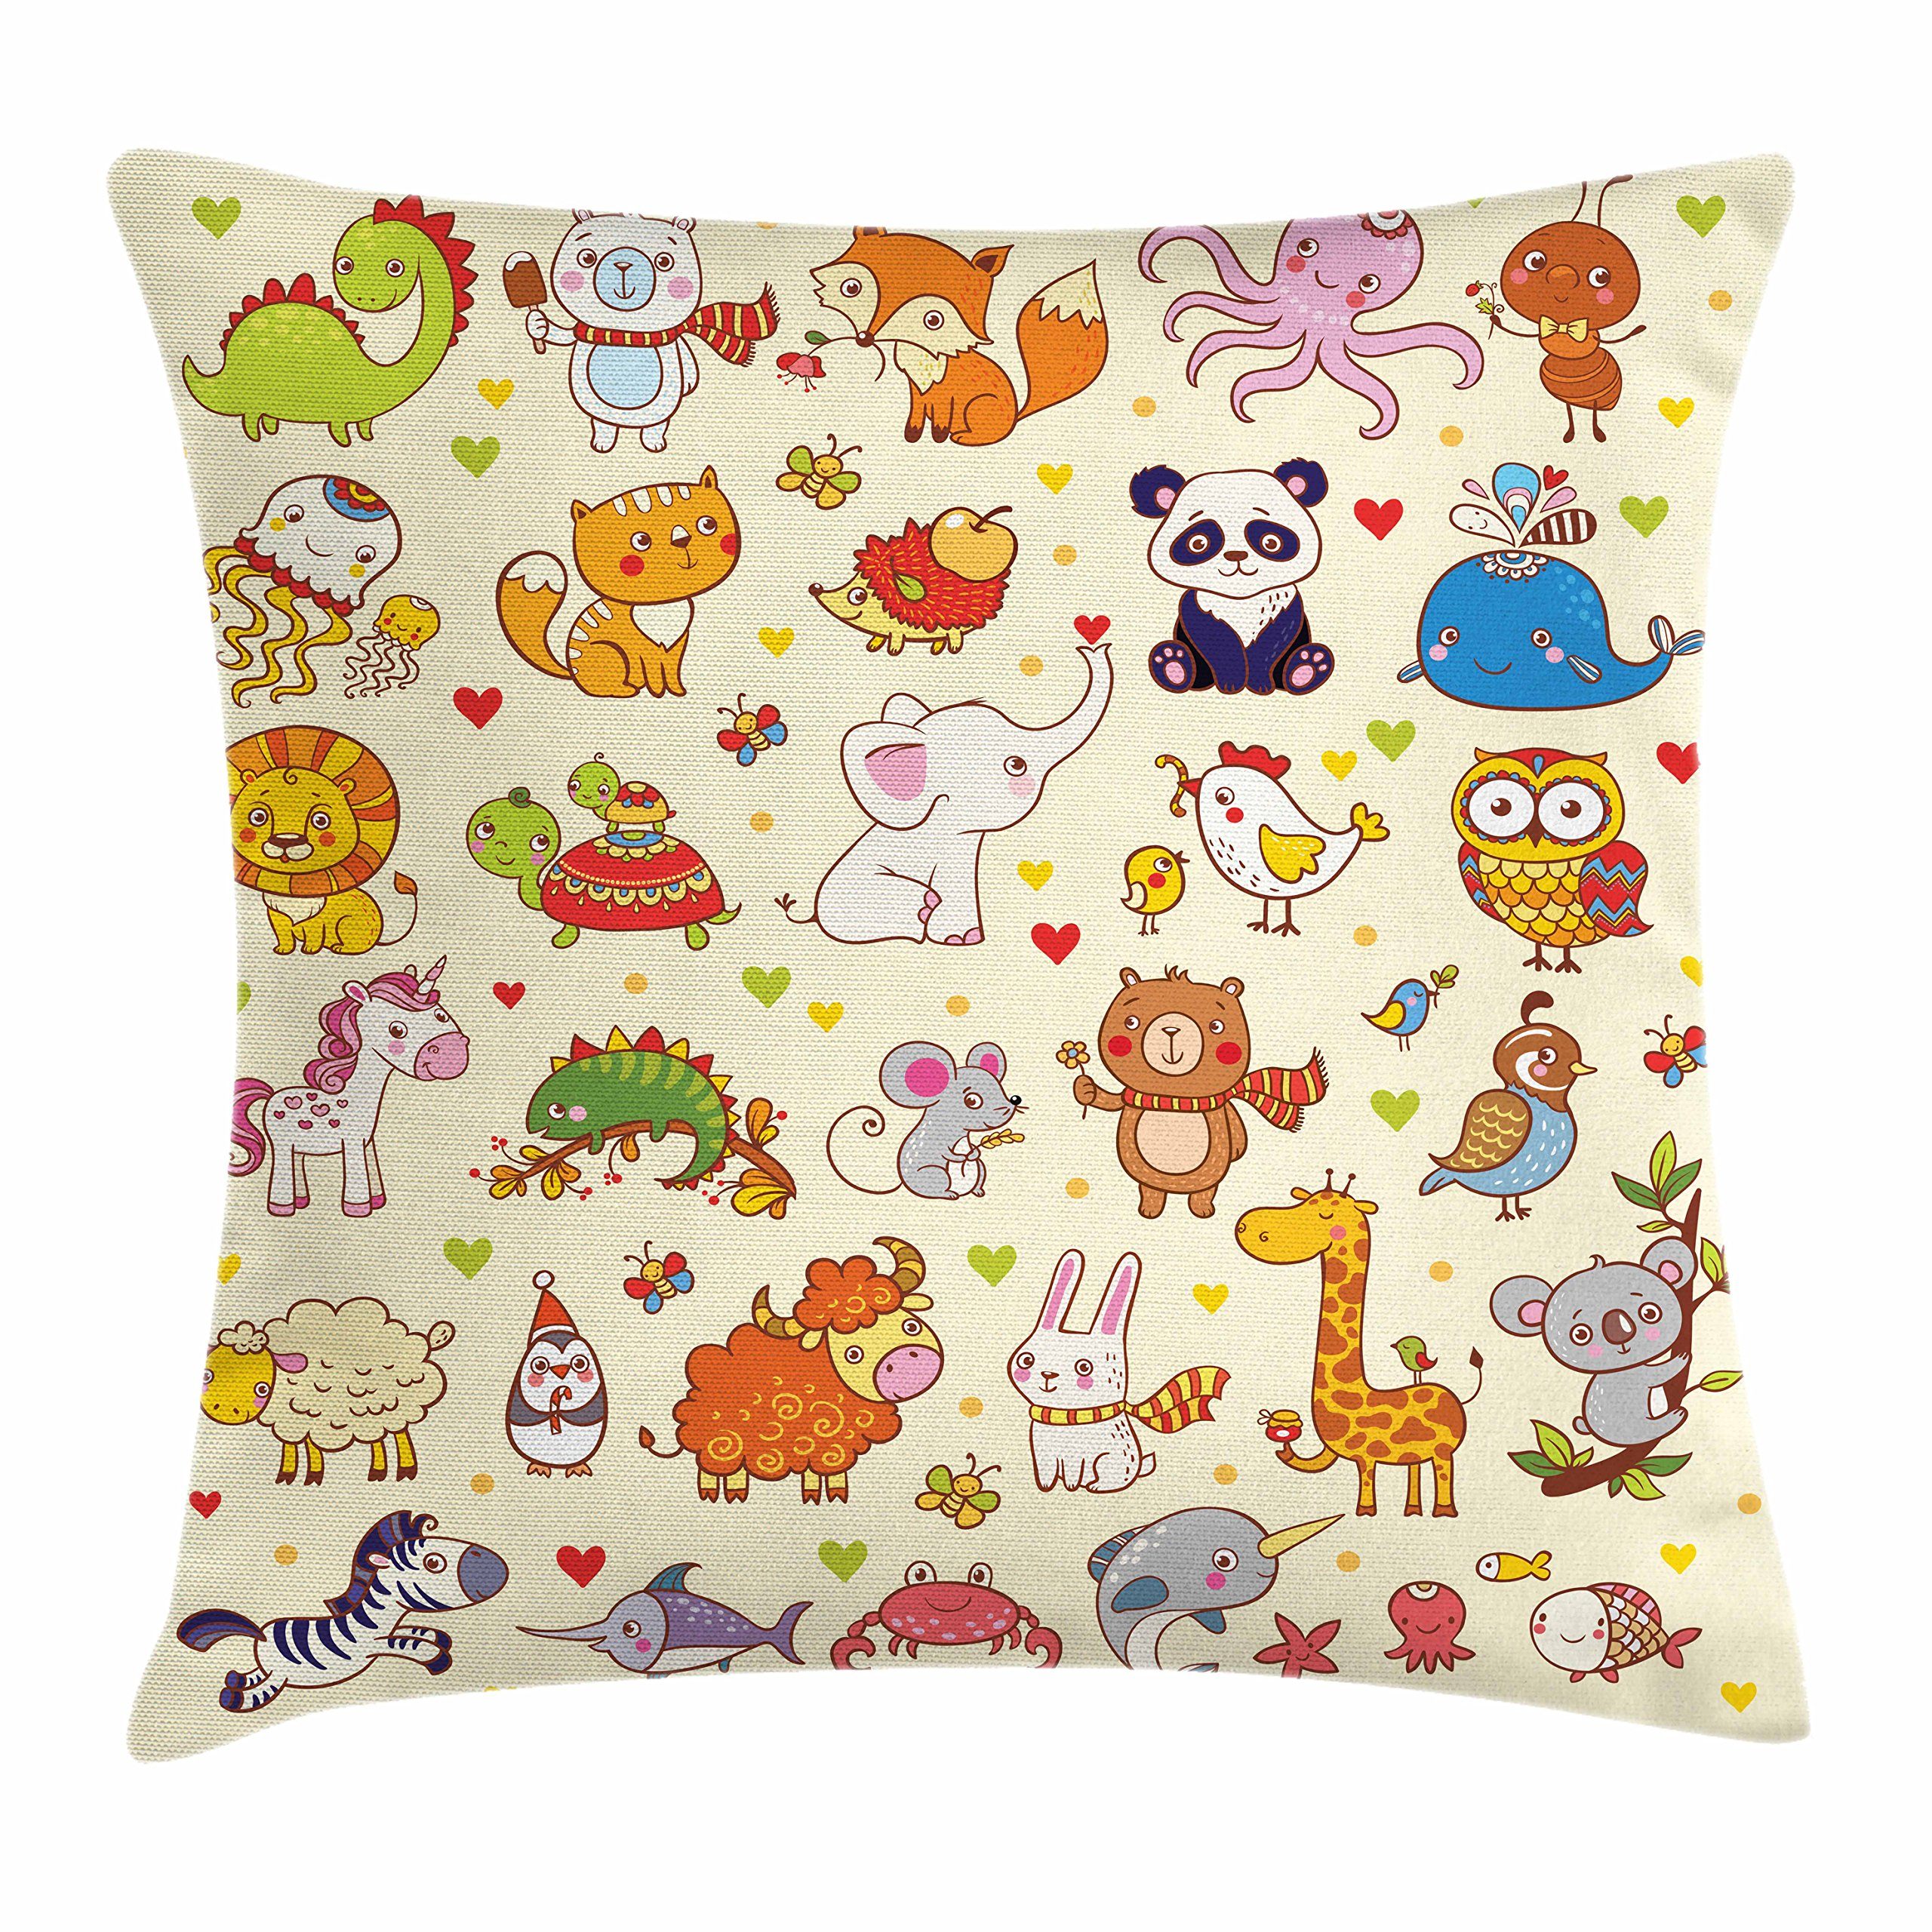 Lunarable Kids Throw Pillow Cushion Cover, Cartoon Panda Fox Elephant Chicken Birds Mouse Animals Nursery Children Room Cute, Decorative Square Accent Pillow Case, 26 X 26 inches, Multicolor